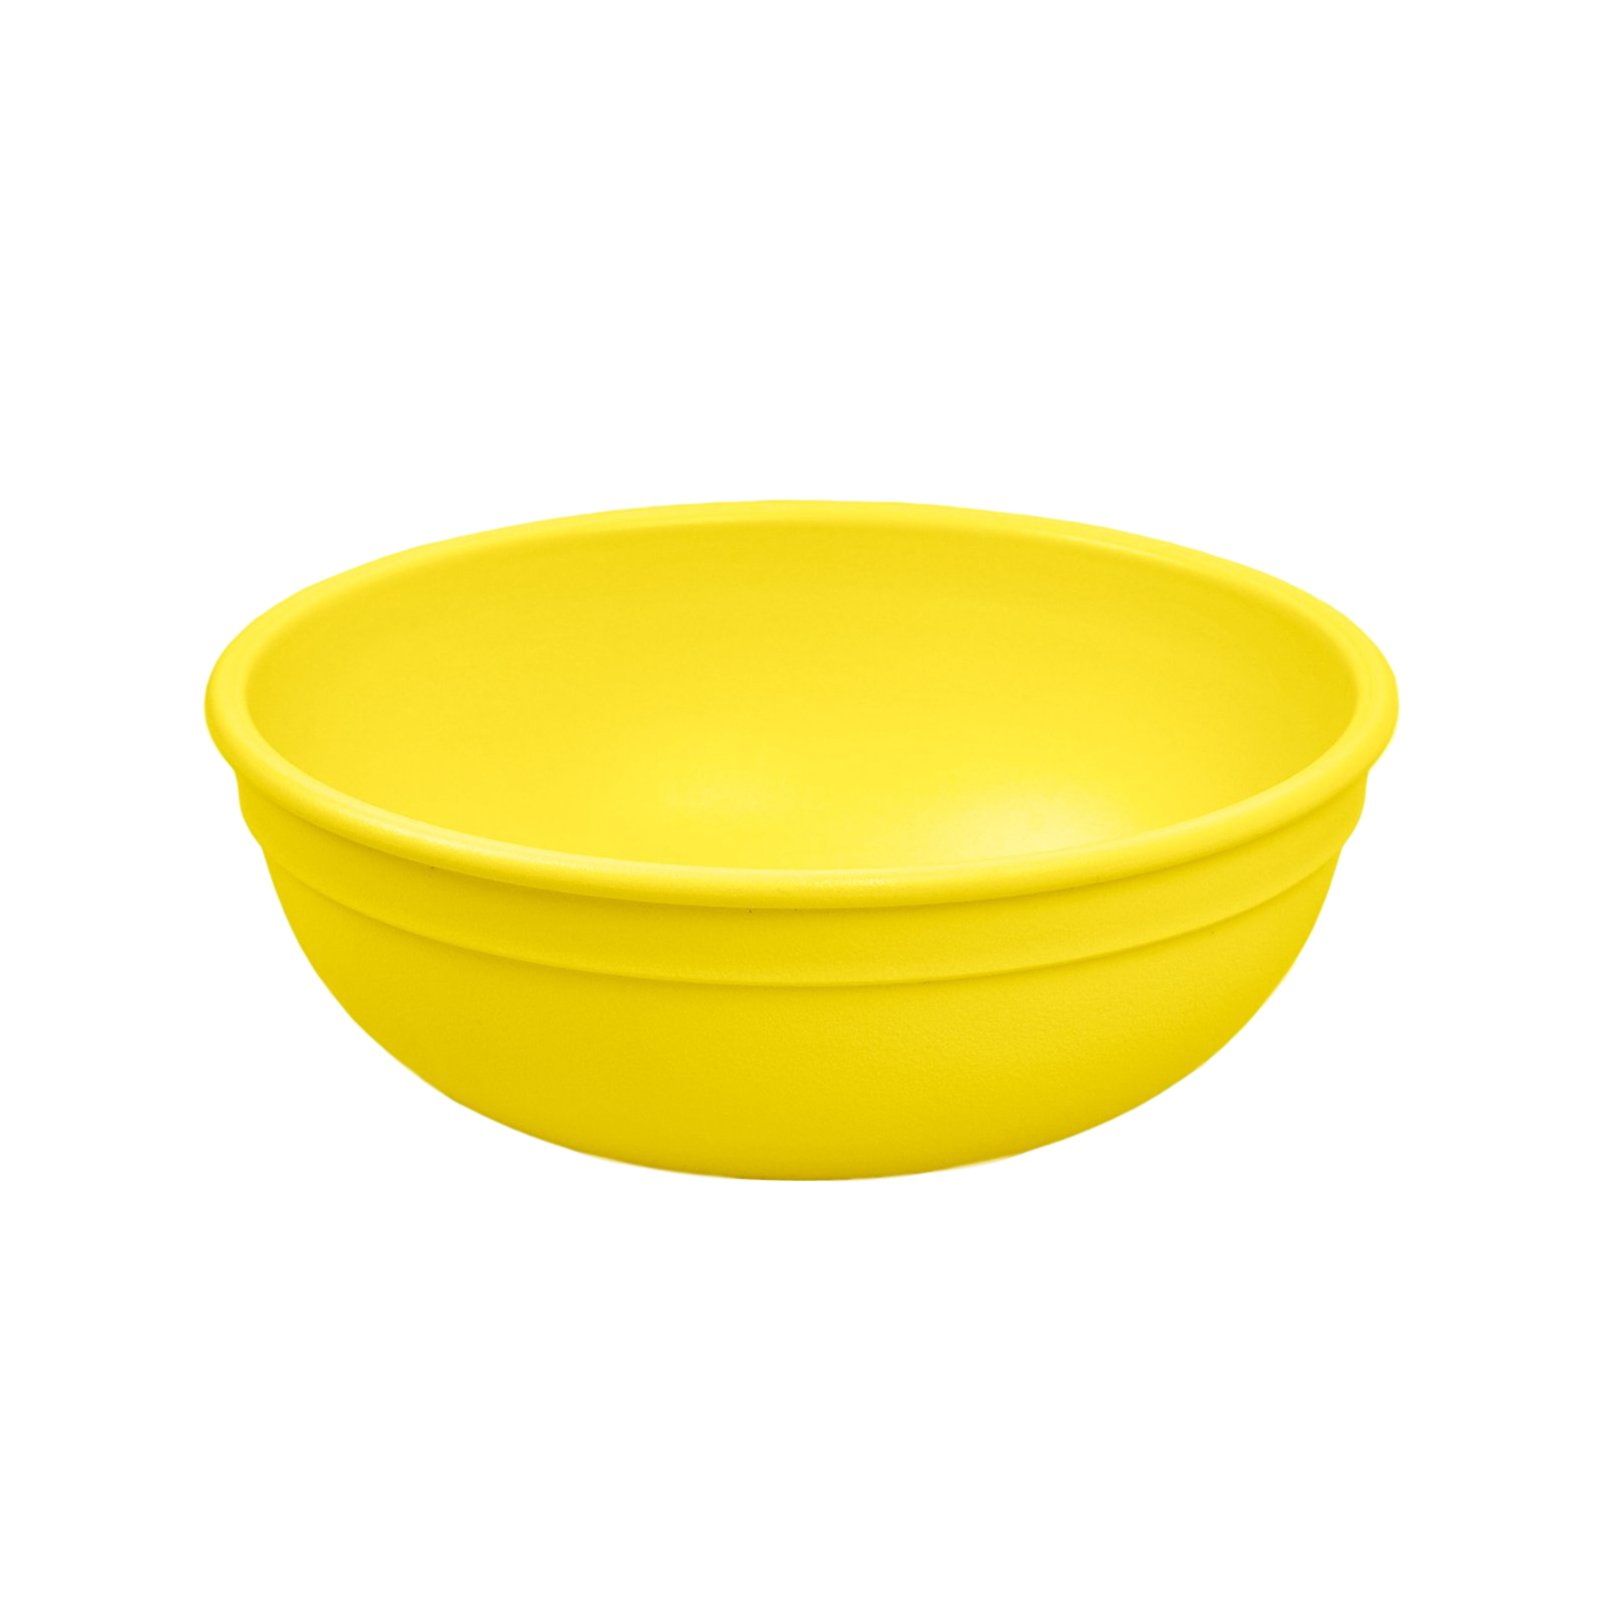 Replay Large Bowl Replay Dinnerware Yellow at Little Earth Nest Eco Shop